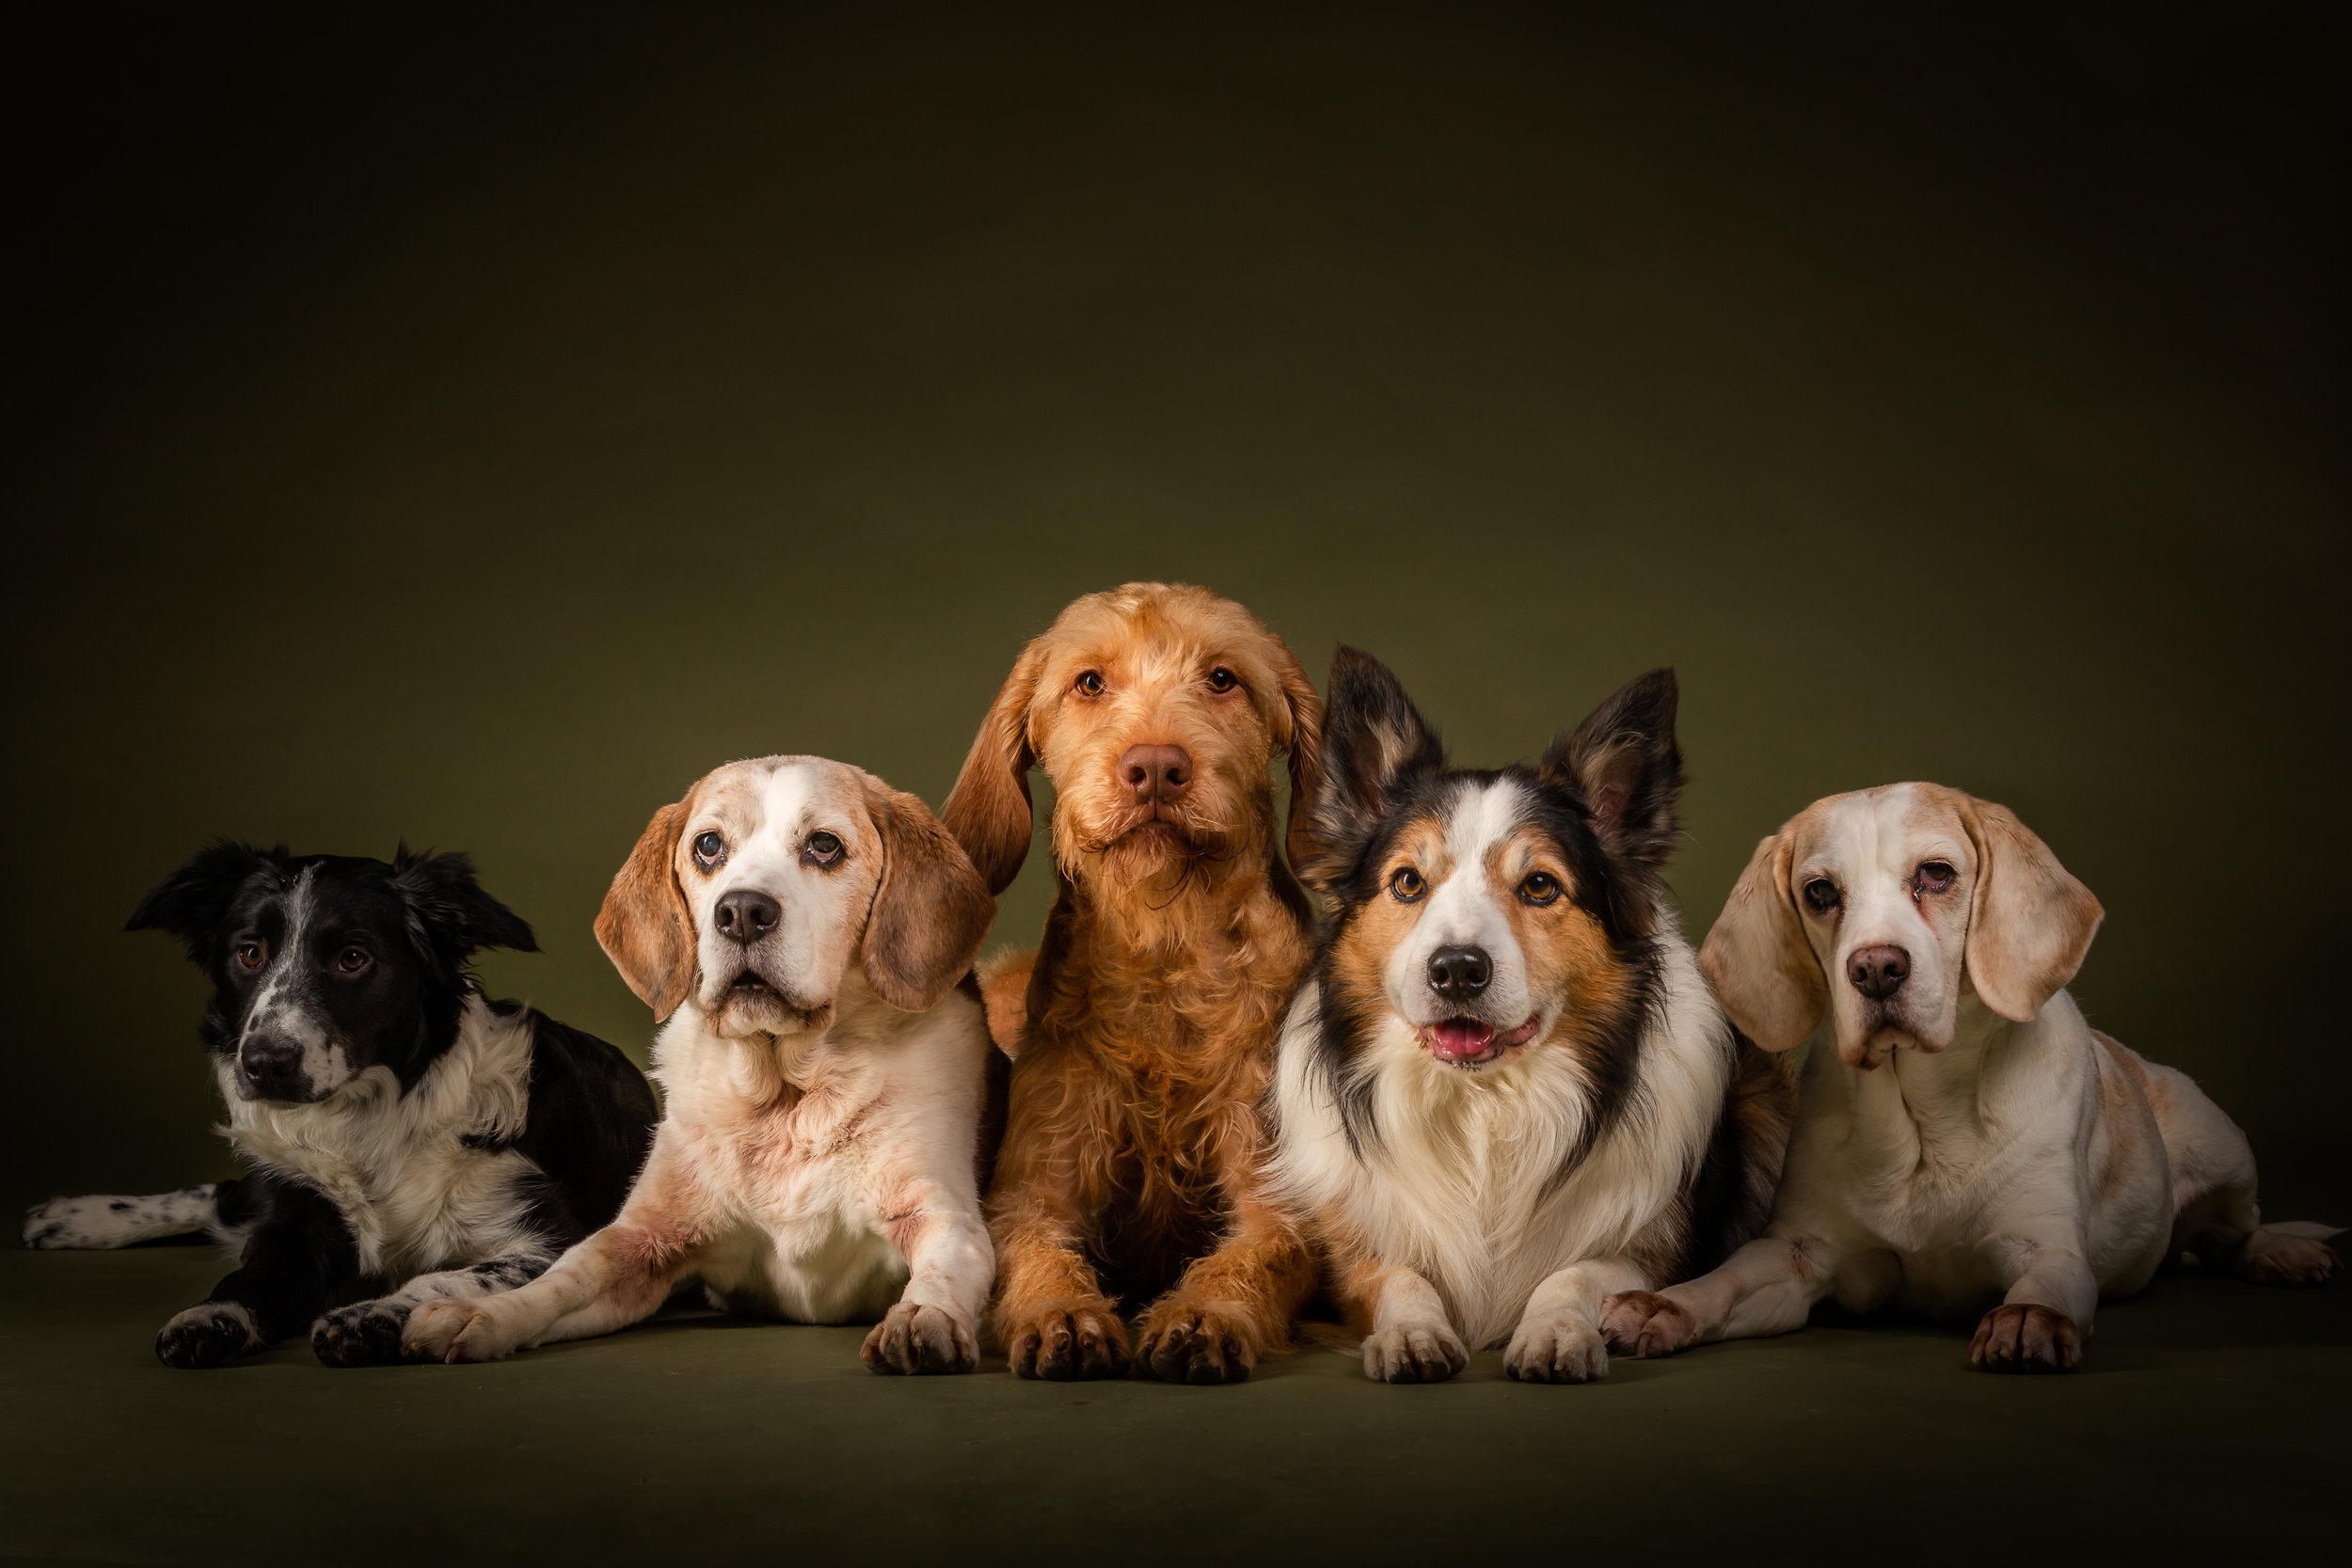 5 dog portrait studio-9154.jpg